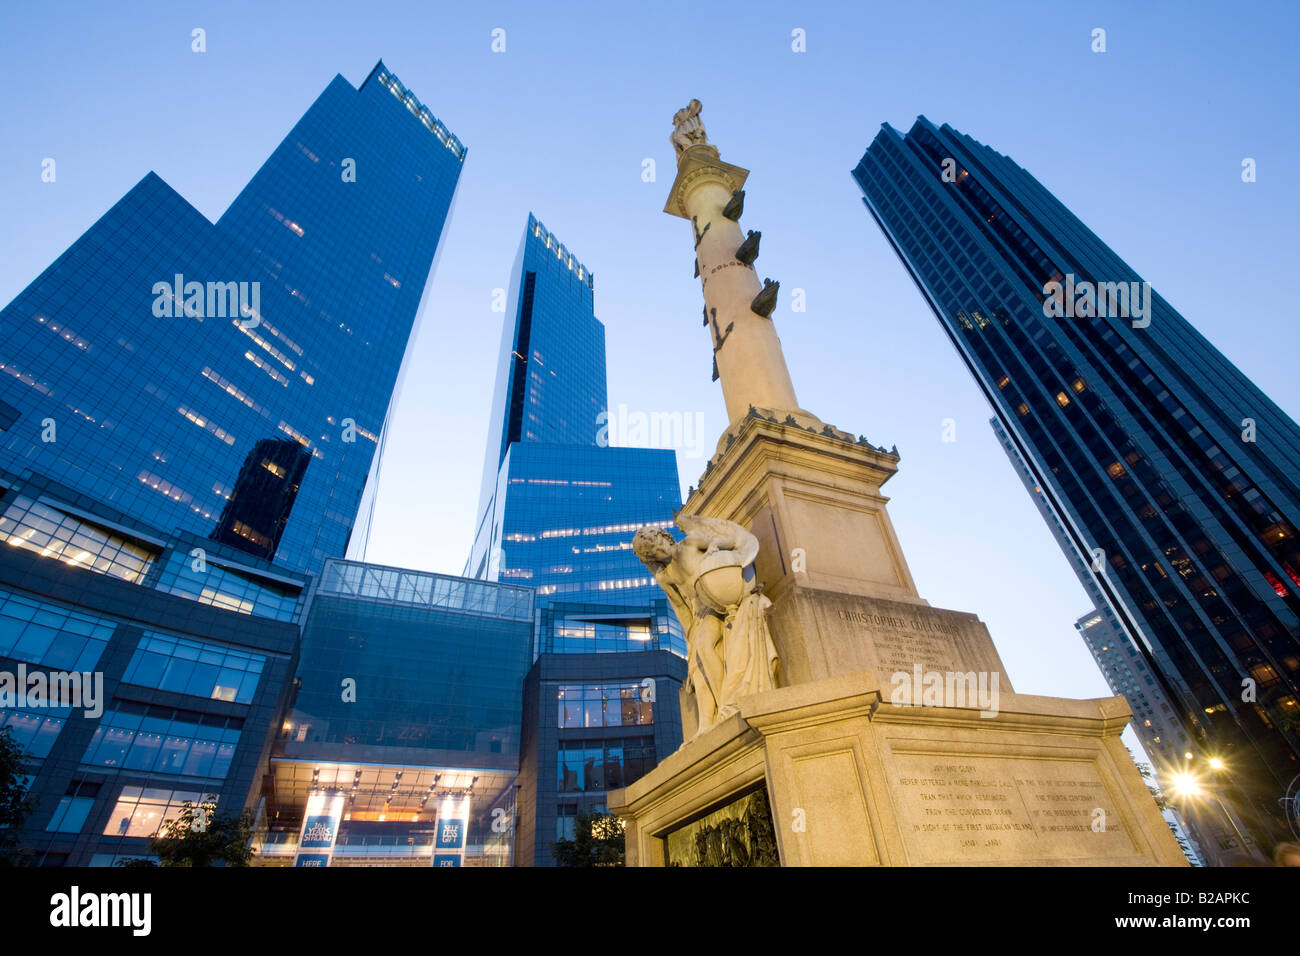 Columbus Circle Time Warner Center Trump Hotel at right, upper West Side New York City - Stock Image